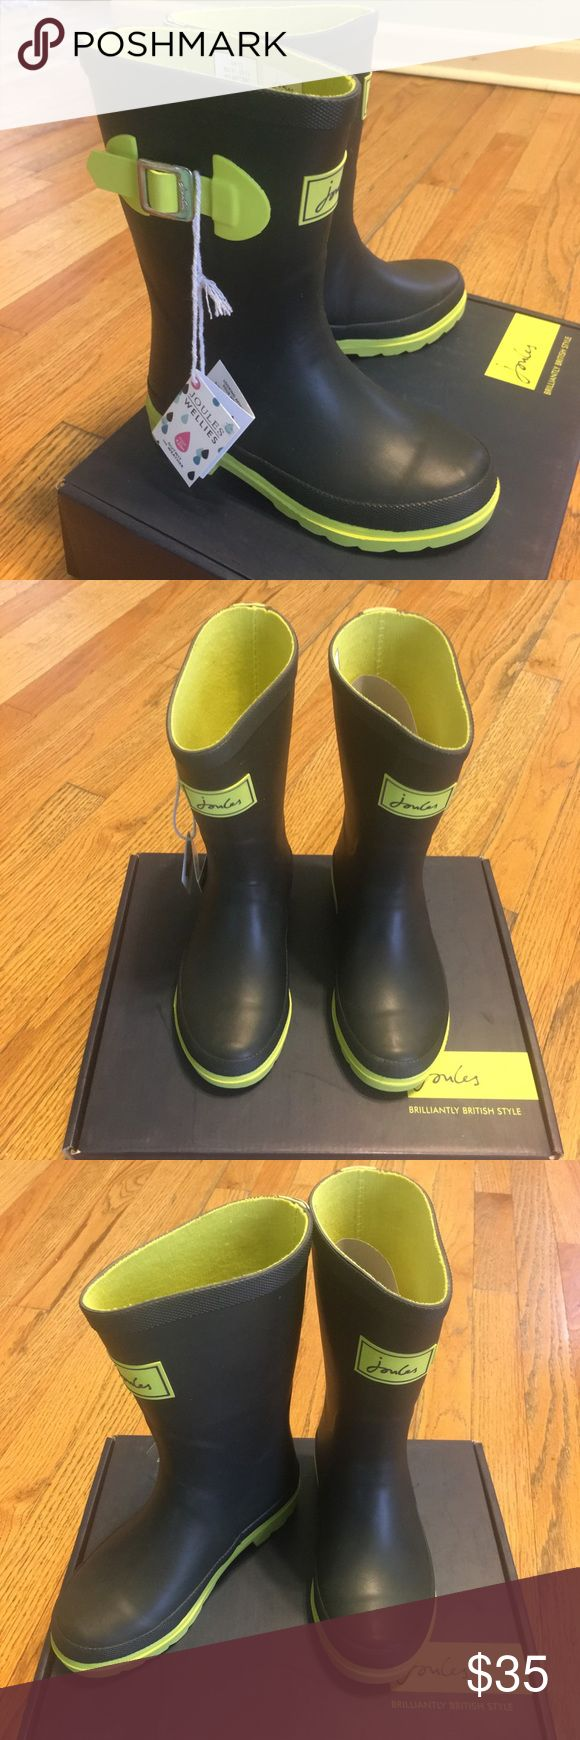 NIB Joules Wellies Kids Rain Boots - Sz 13 New in a Box Joules Shoes Rain & Snow Boots